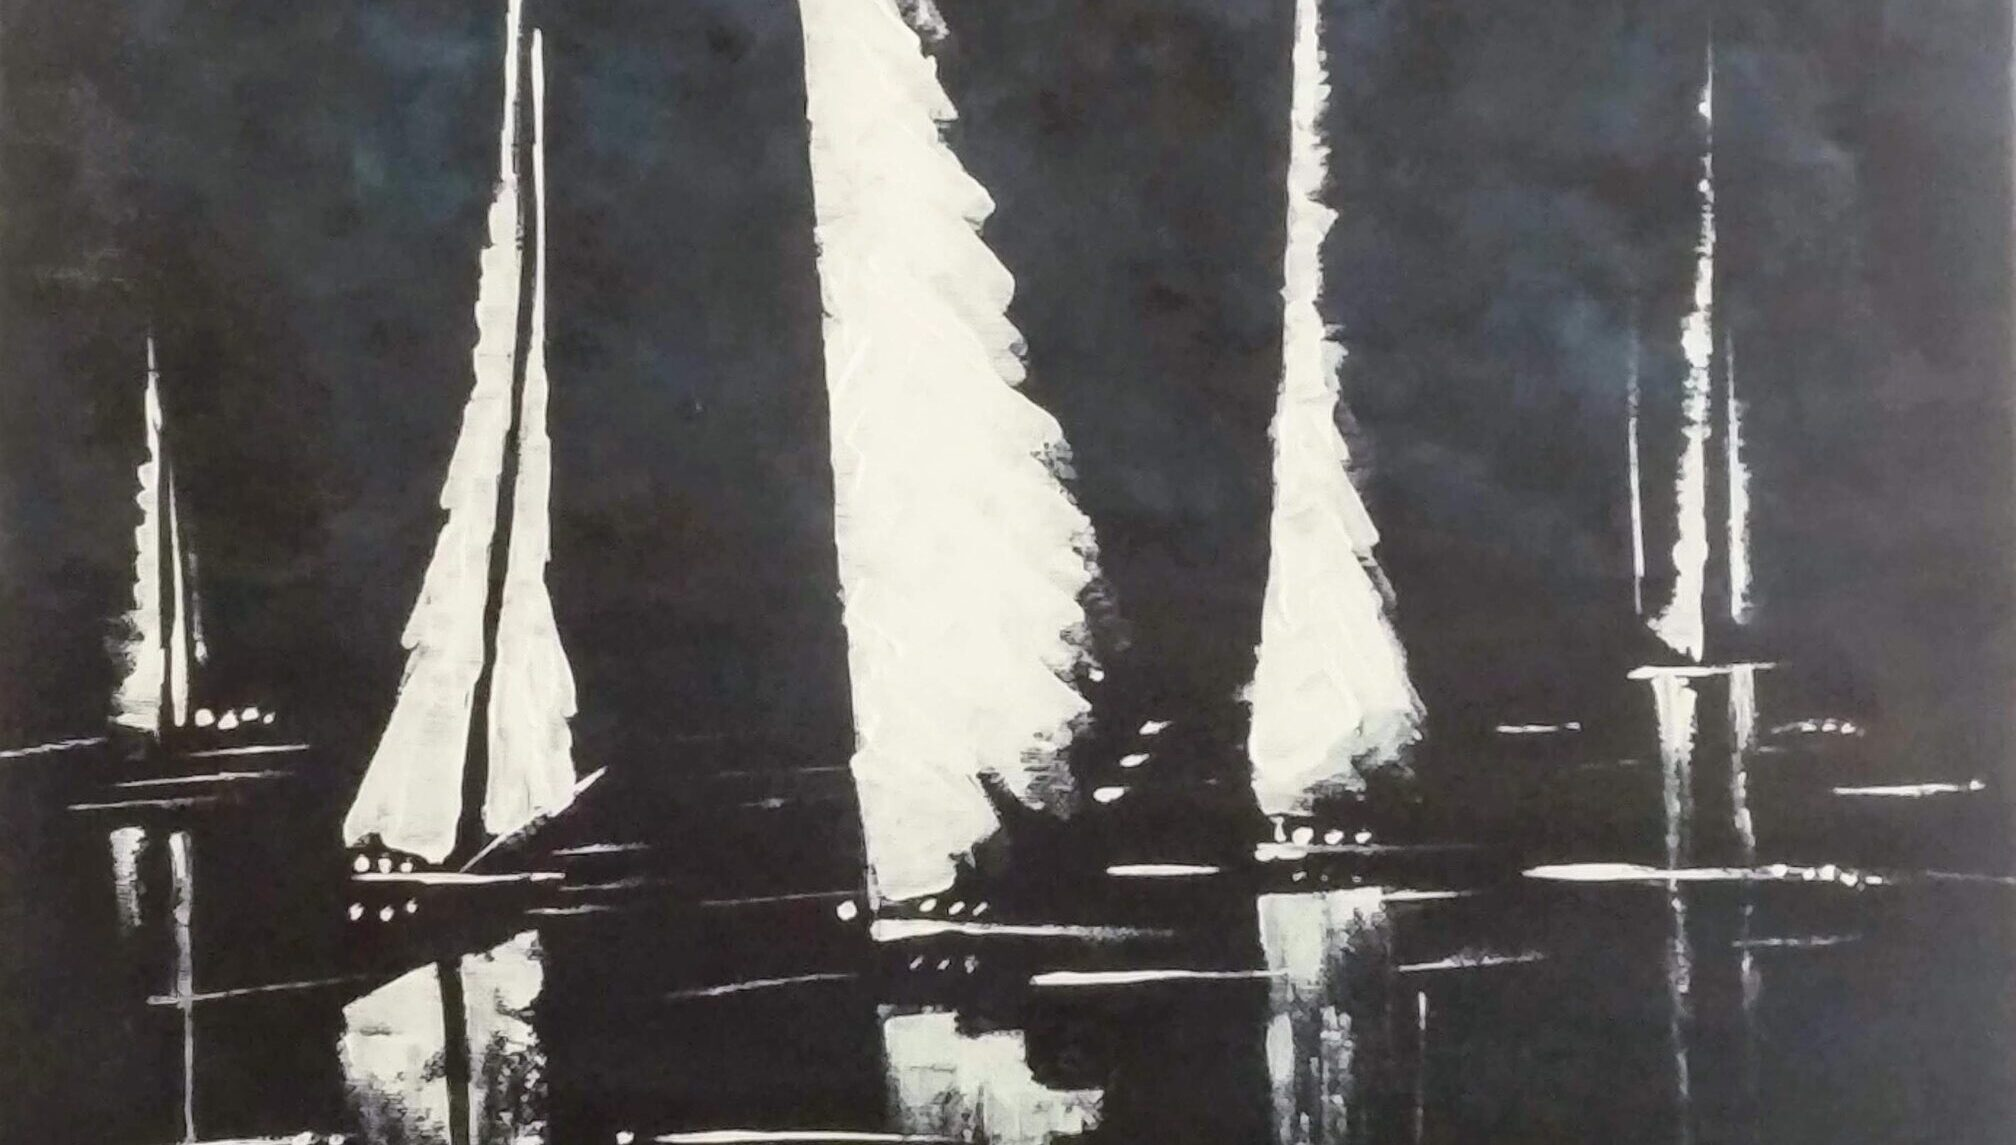 Painting of sail boats by Sucheta Jadhav for India's first solo circumnavigator Dilip Donde